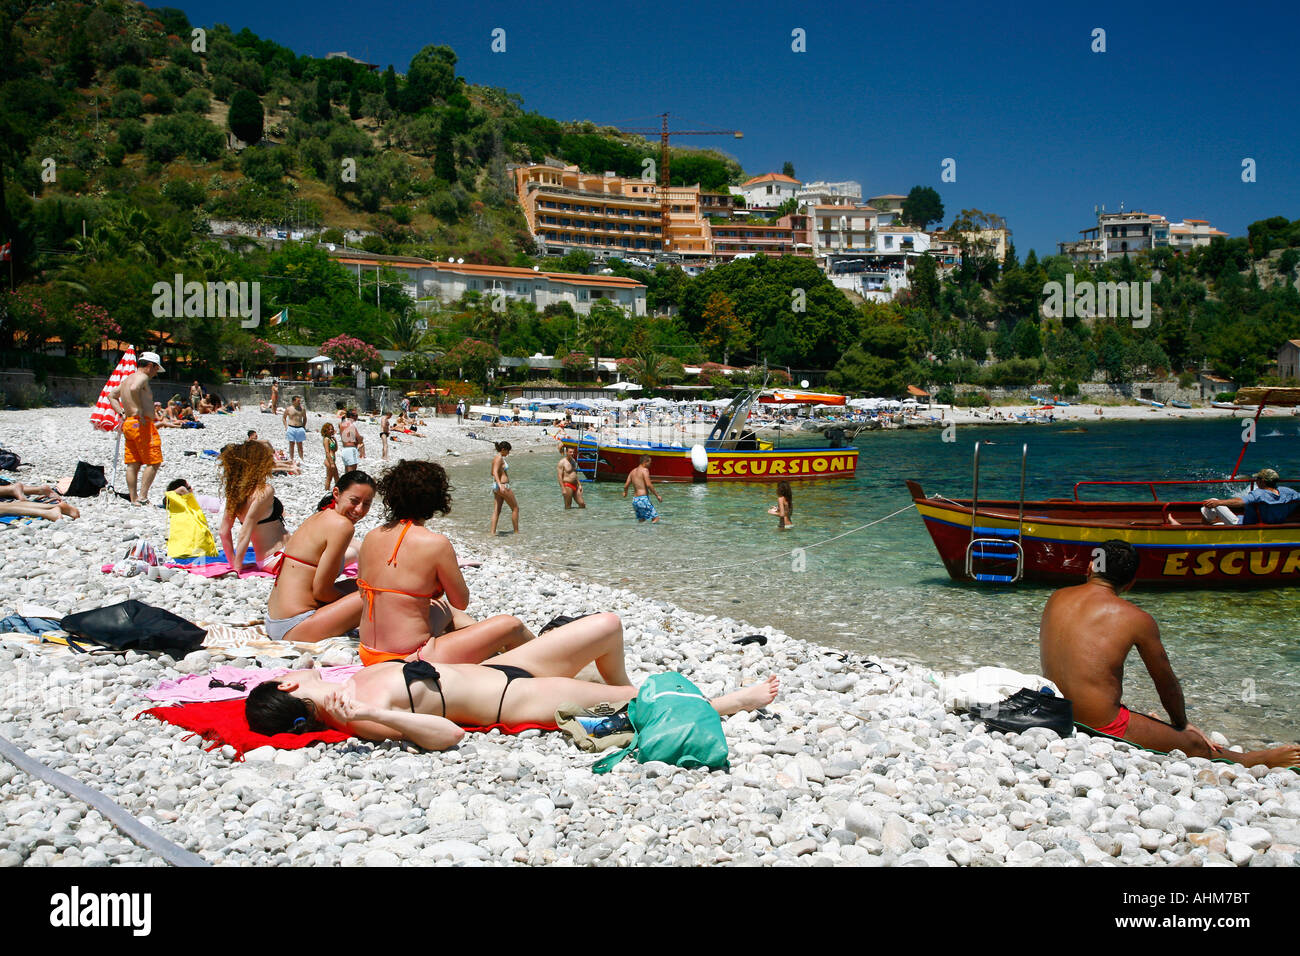 People on the beach at Isola Bella island Taormina Sicliy - Stock Image